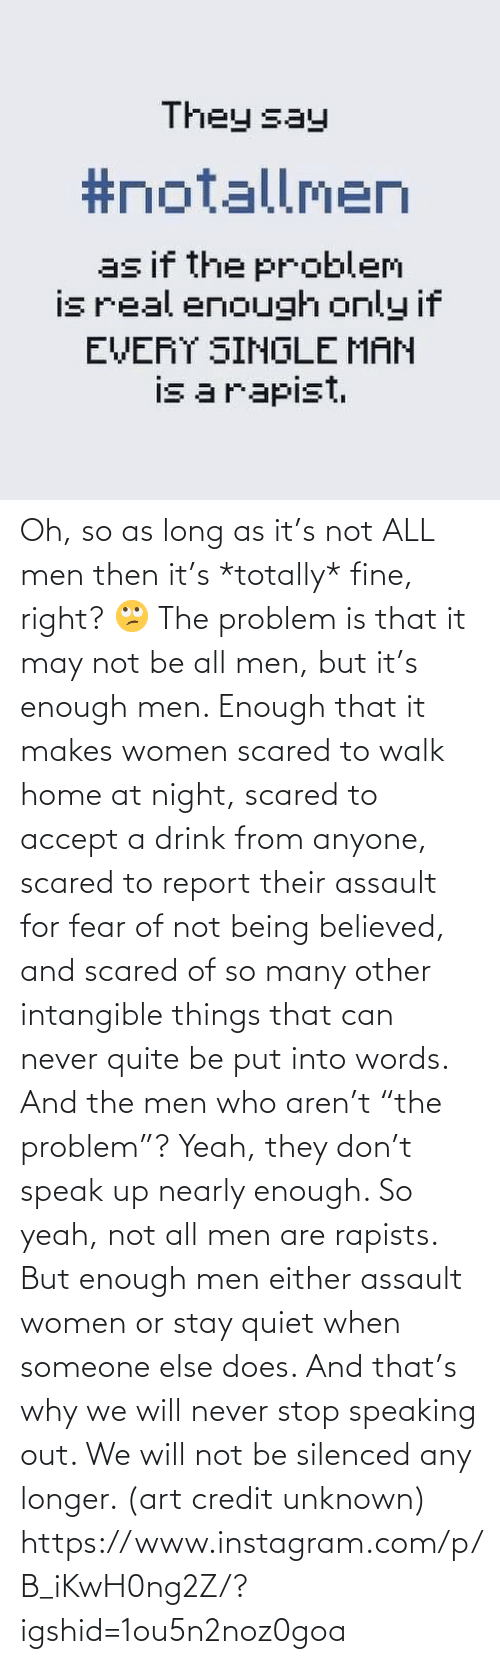 """Quiet: Oh, so as long as it's not ALL men then it's *totally* fine, right? 🙄 The problem is that it may not be all men, but it's enough men. Enough that it makes women scared to walk home at night, scared to accept a drink from anyone, scared to report their assault for fear of not being believed, and scared of so many other intangible things that can never quite be put into words. And the men who aren't """"the problem""""? Yeah, they don't speak up nearly enough. So yeah, not all men are rapists. But enough men either assault women or stay quiet when someone else does. And that's why we will never stop speaking out. We will not be silenced any longer. (art credit unknown)  https://www.instagram.com/p/B_iKwH0ng2Z/?igshid=1ou5n2noz0goa"""